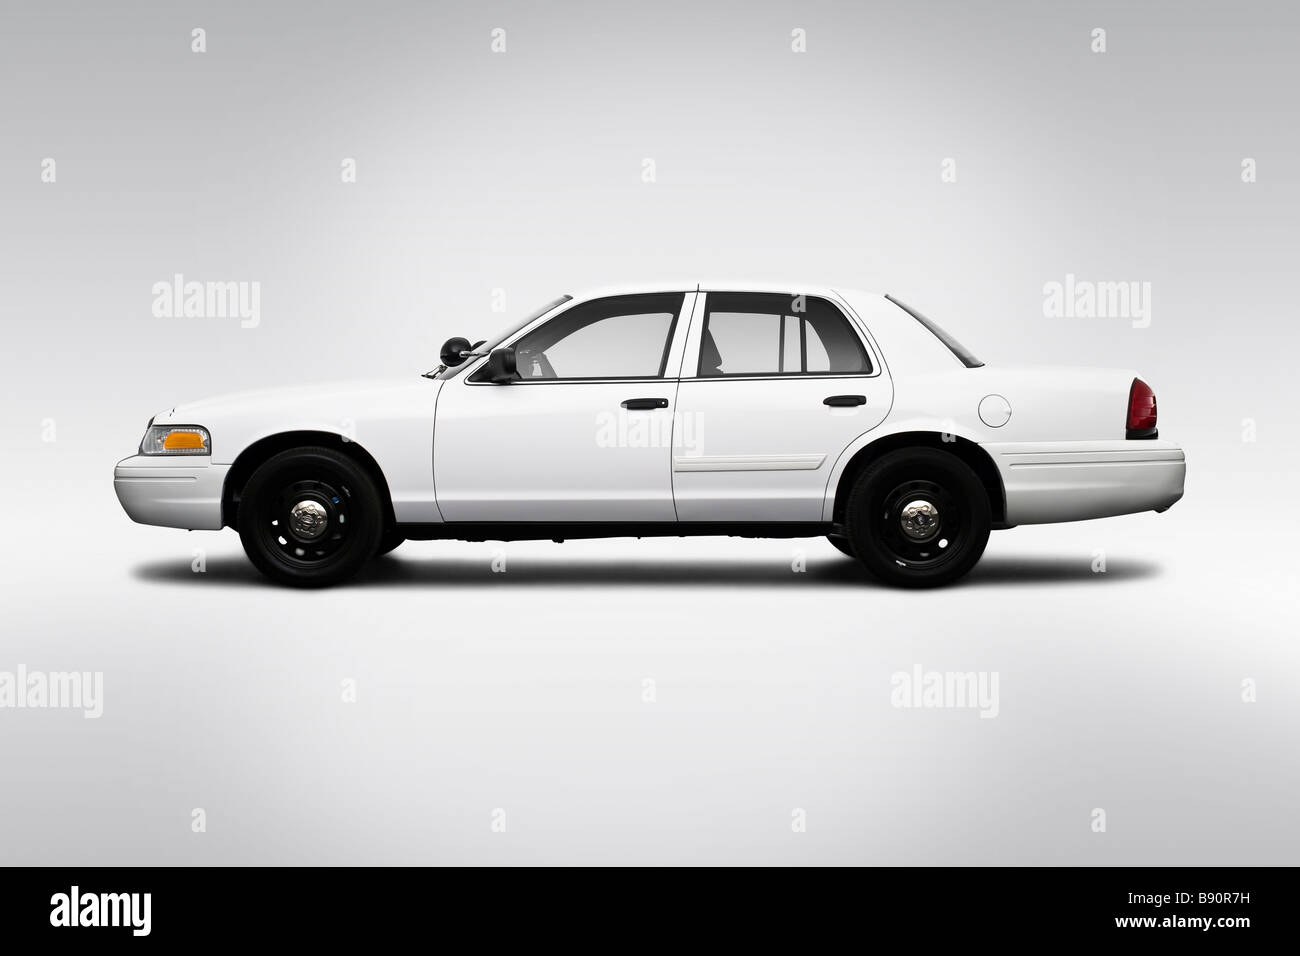 2009 ford crown victoria police interceptor in white drivers side profile